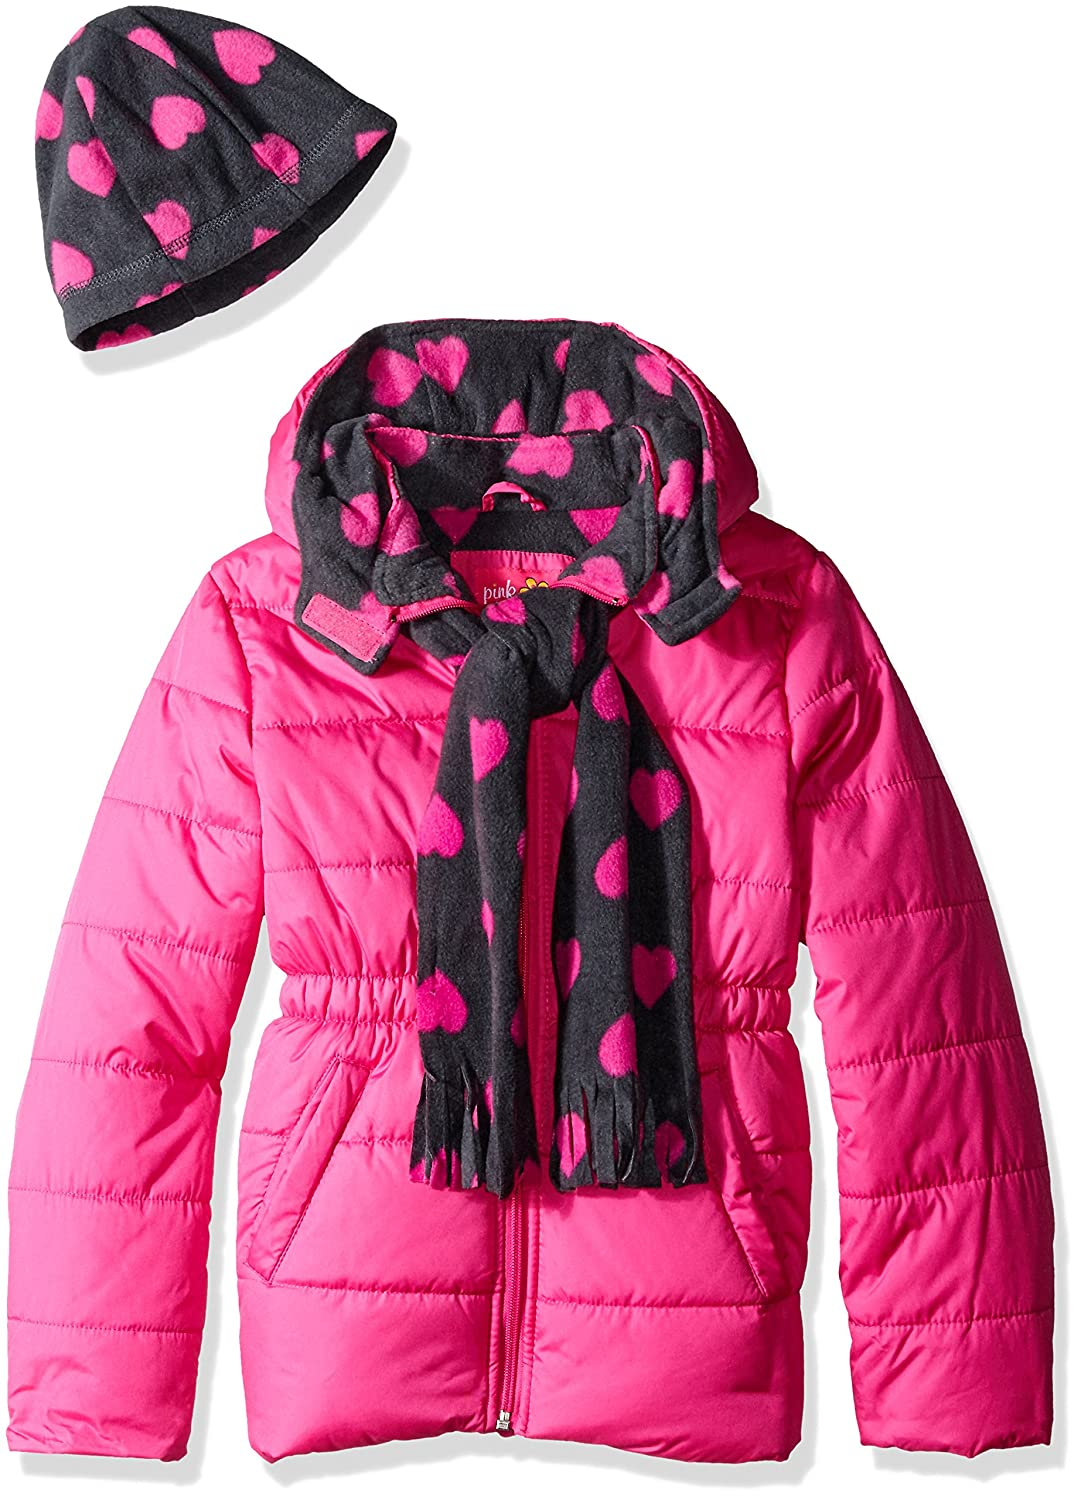 Pink Platinum Girls Puffer Jacket with Heart Print Lining and Accessories